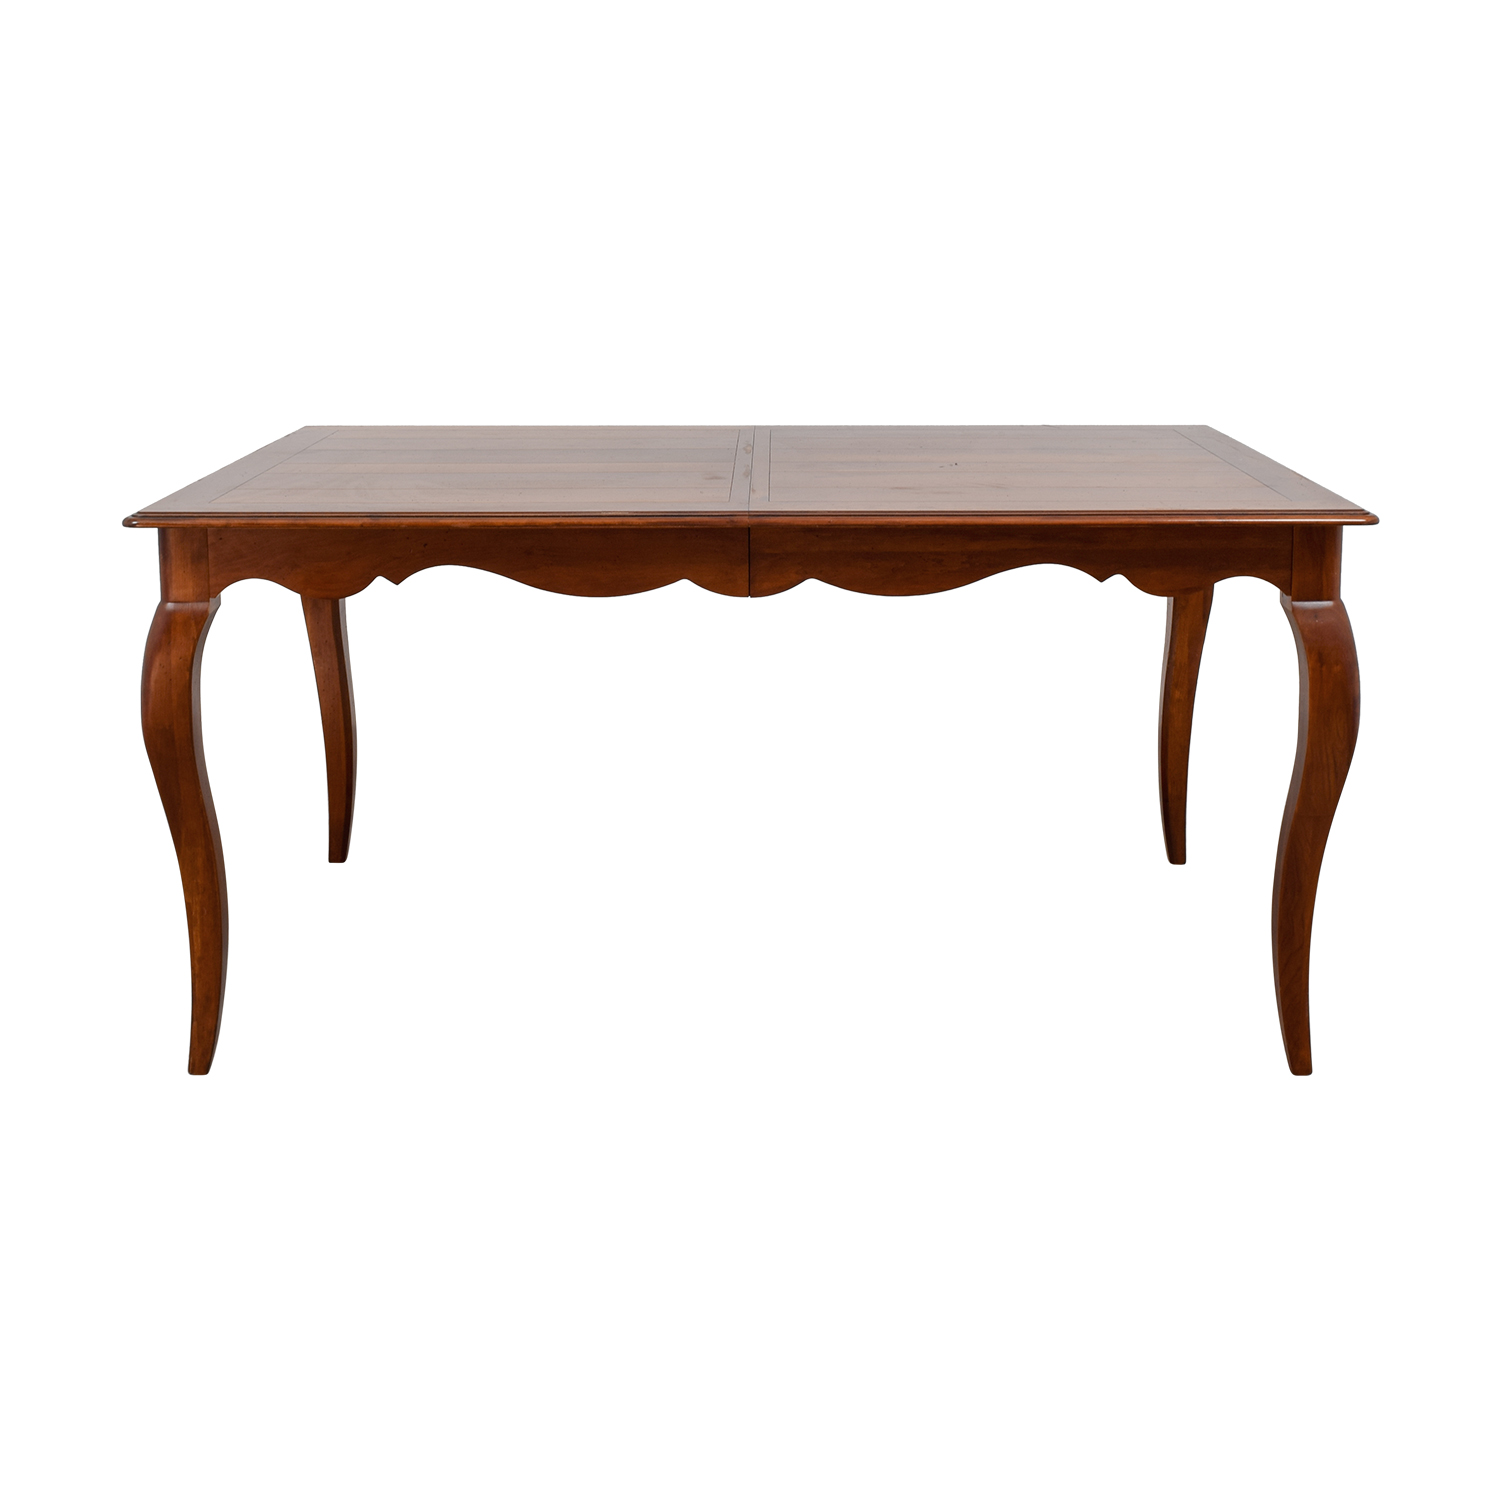 off ethan allen juliette wood dovetailed dining table end tables craigslist sauder bedside mainstays with media stand queen anne cherry coffee replacement glass top for patio